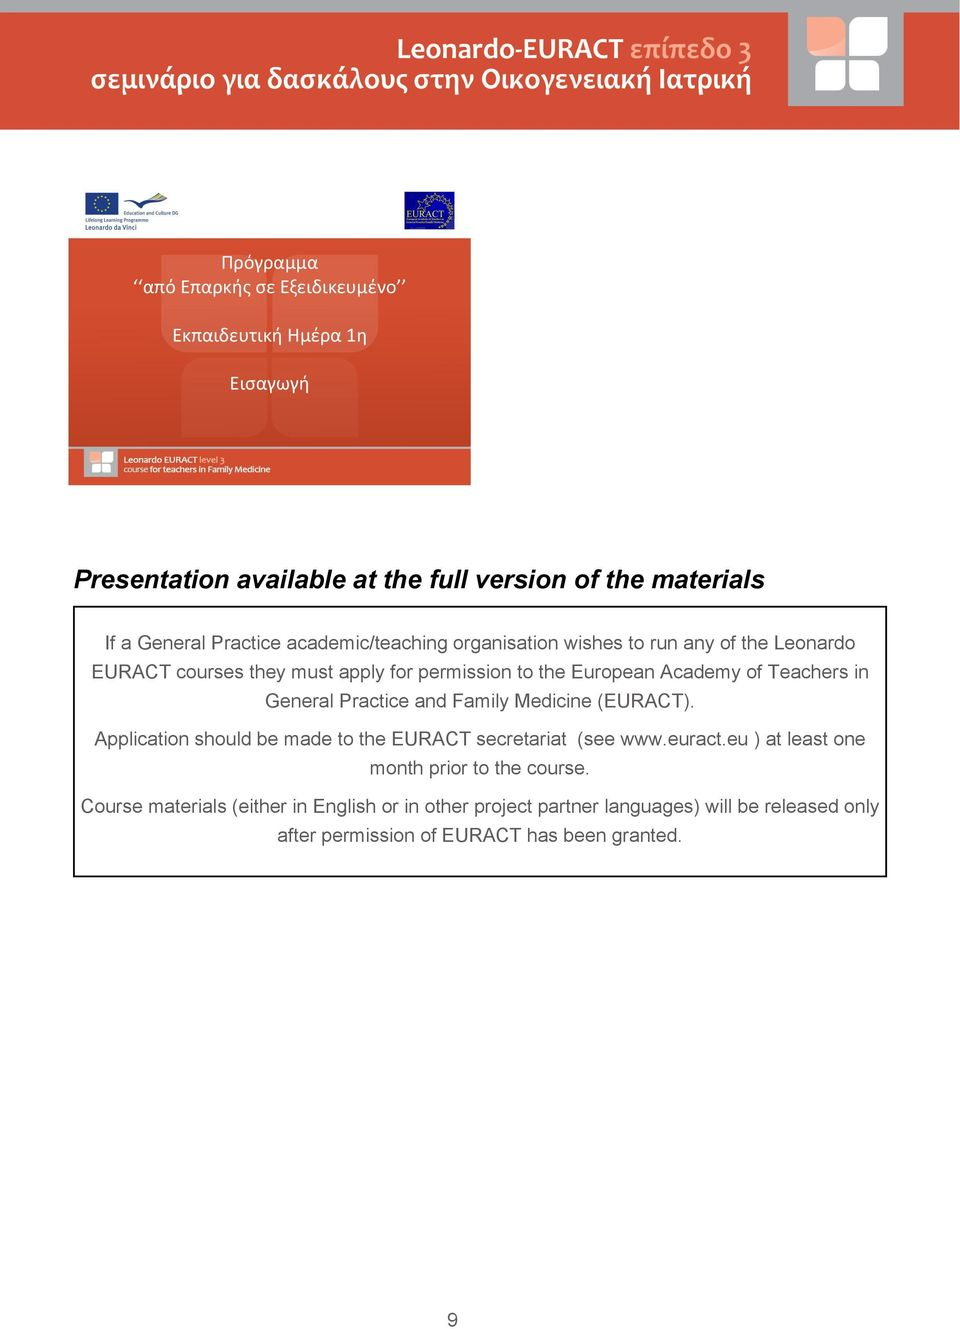 General Practice and Family Medicine (EURACT). Application should be made to the EURACT secretariat (see www.euract.